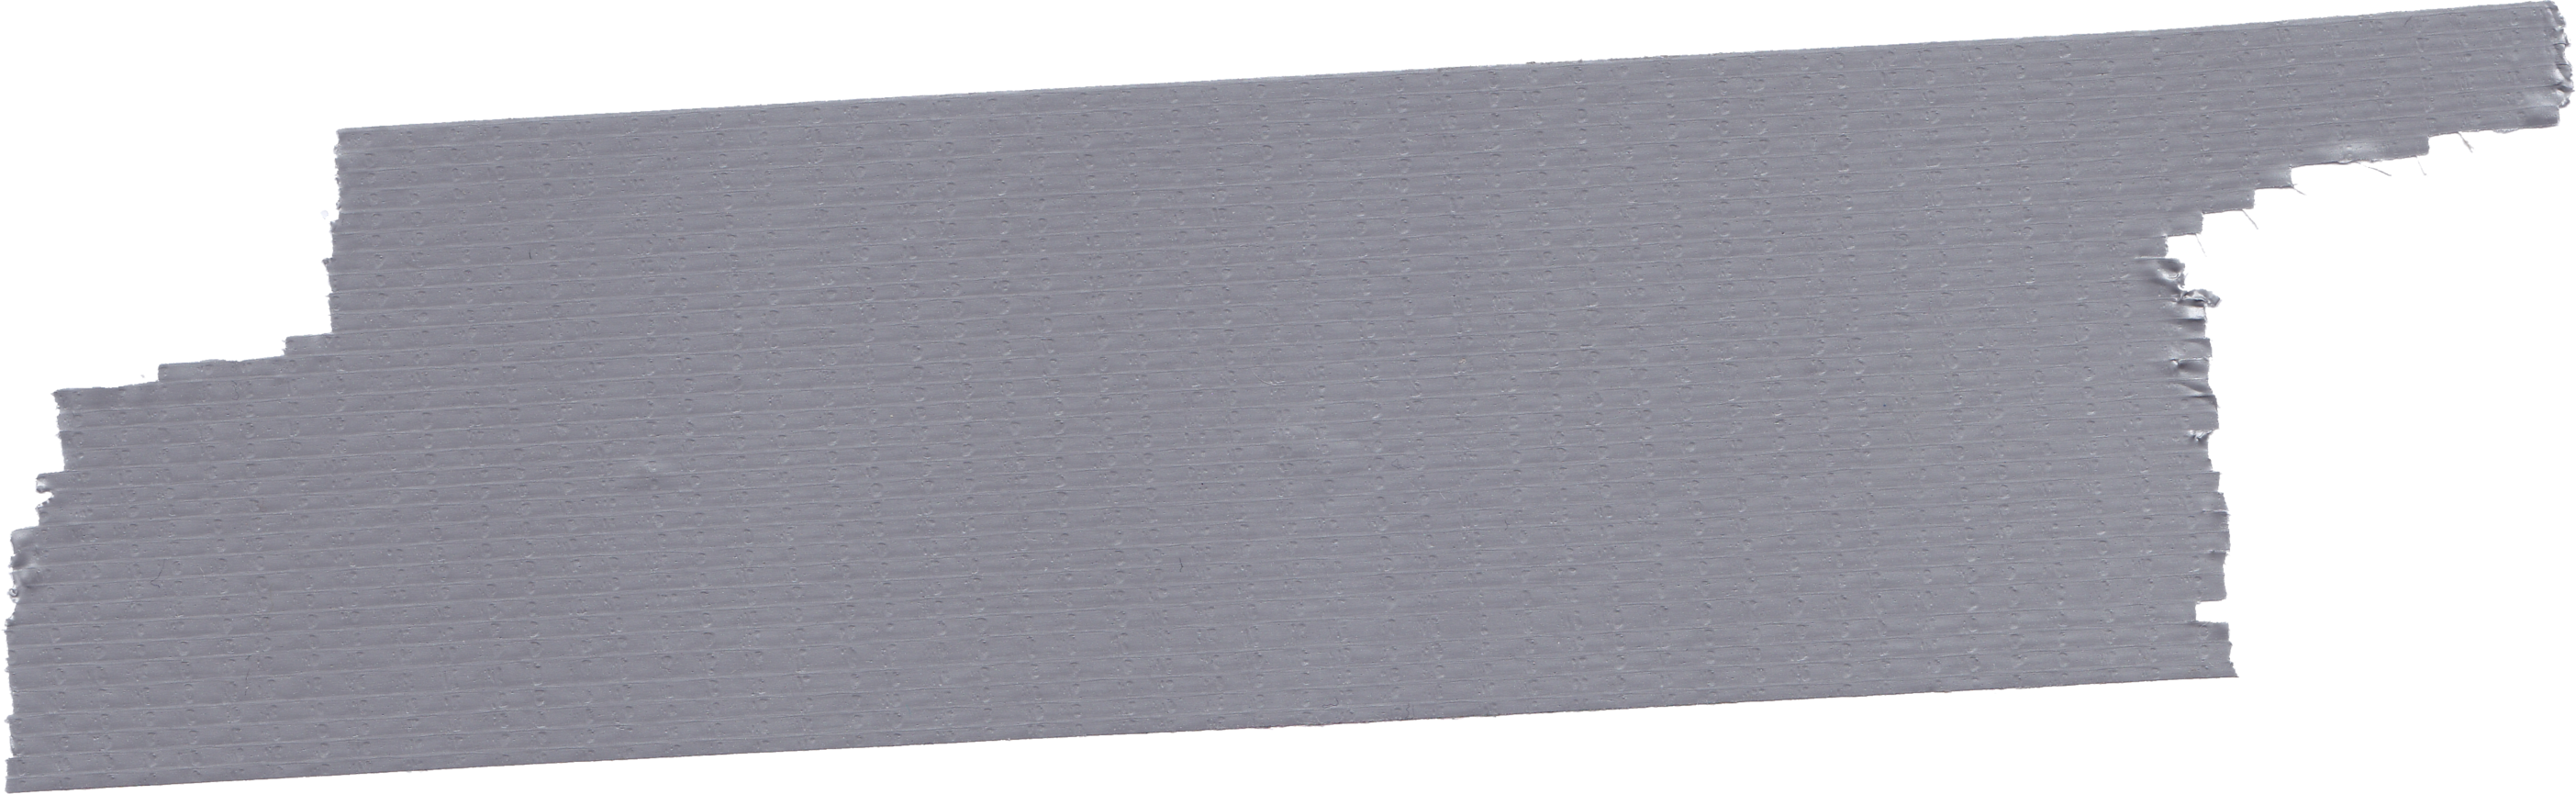 Black tape png. Images in collection page